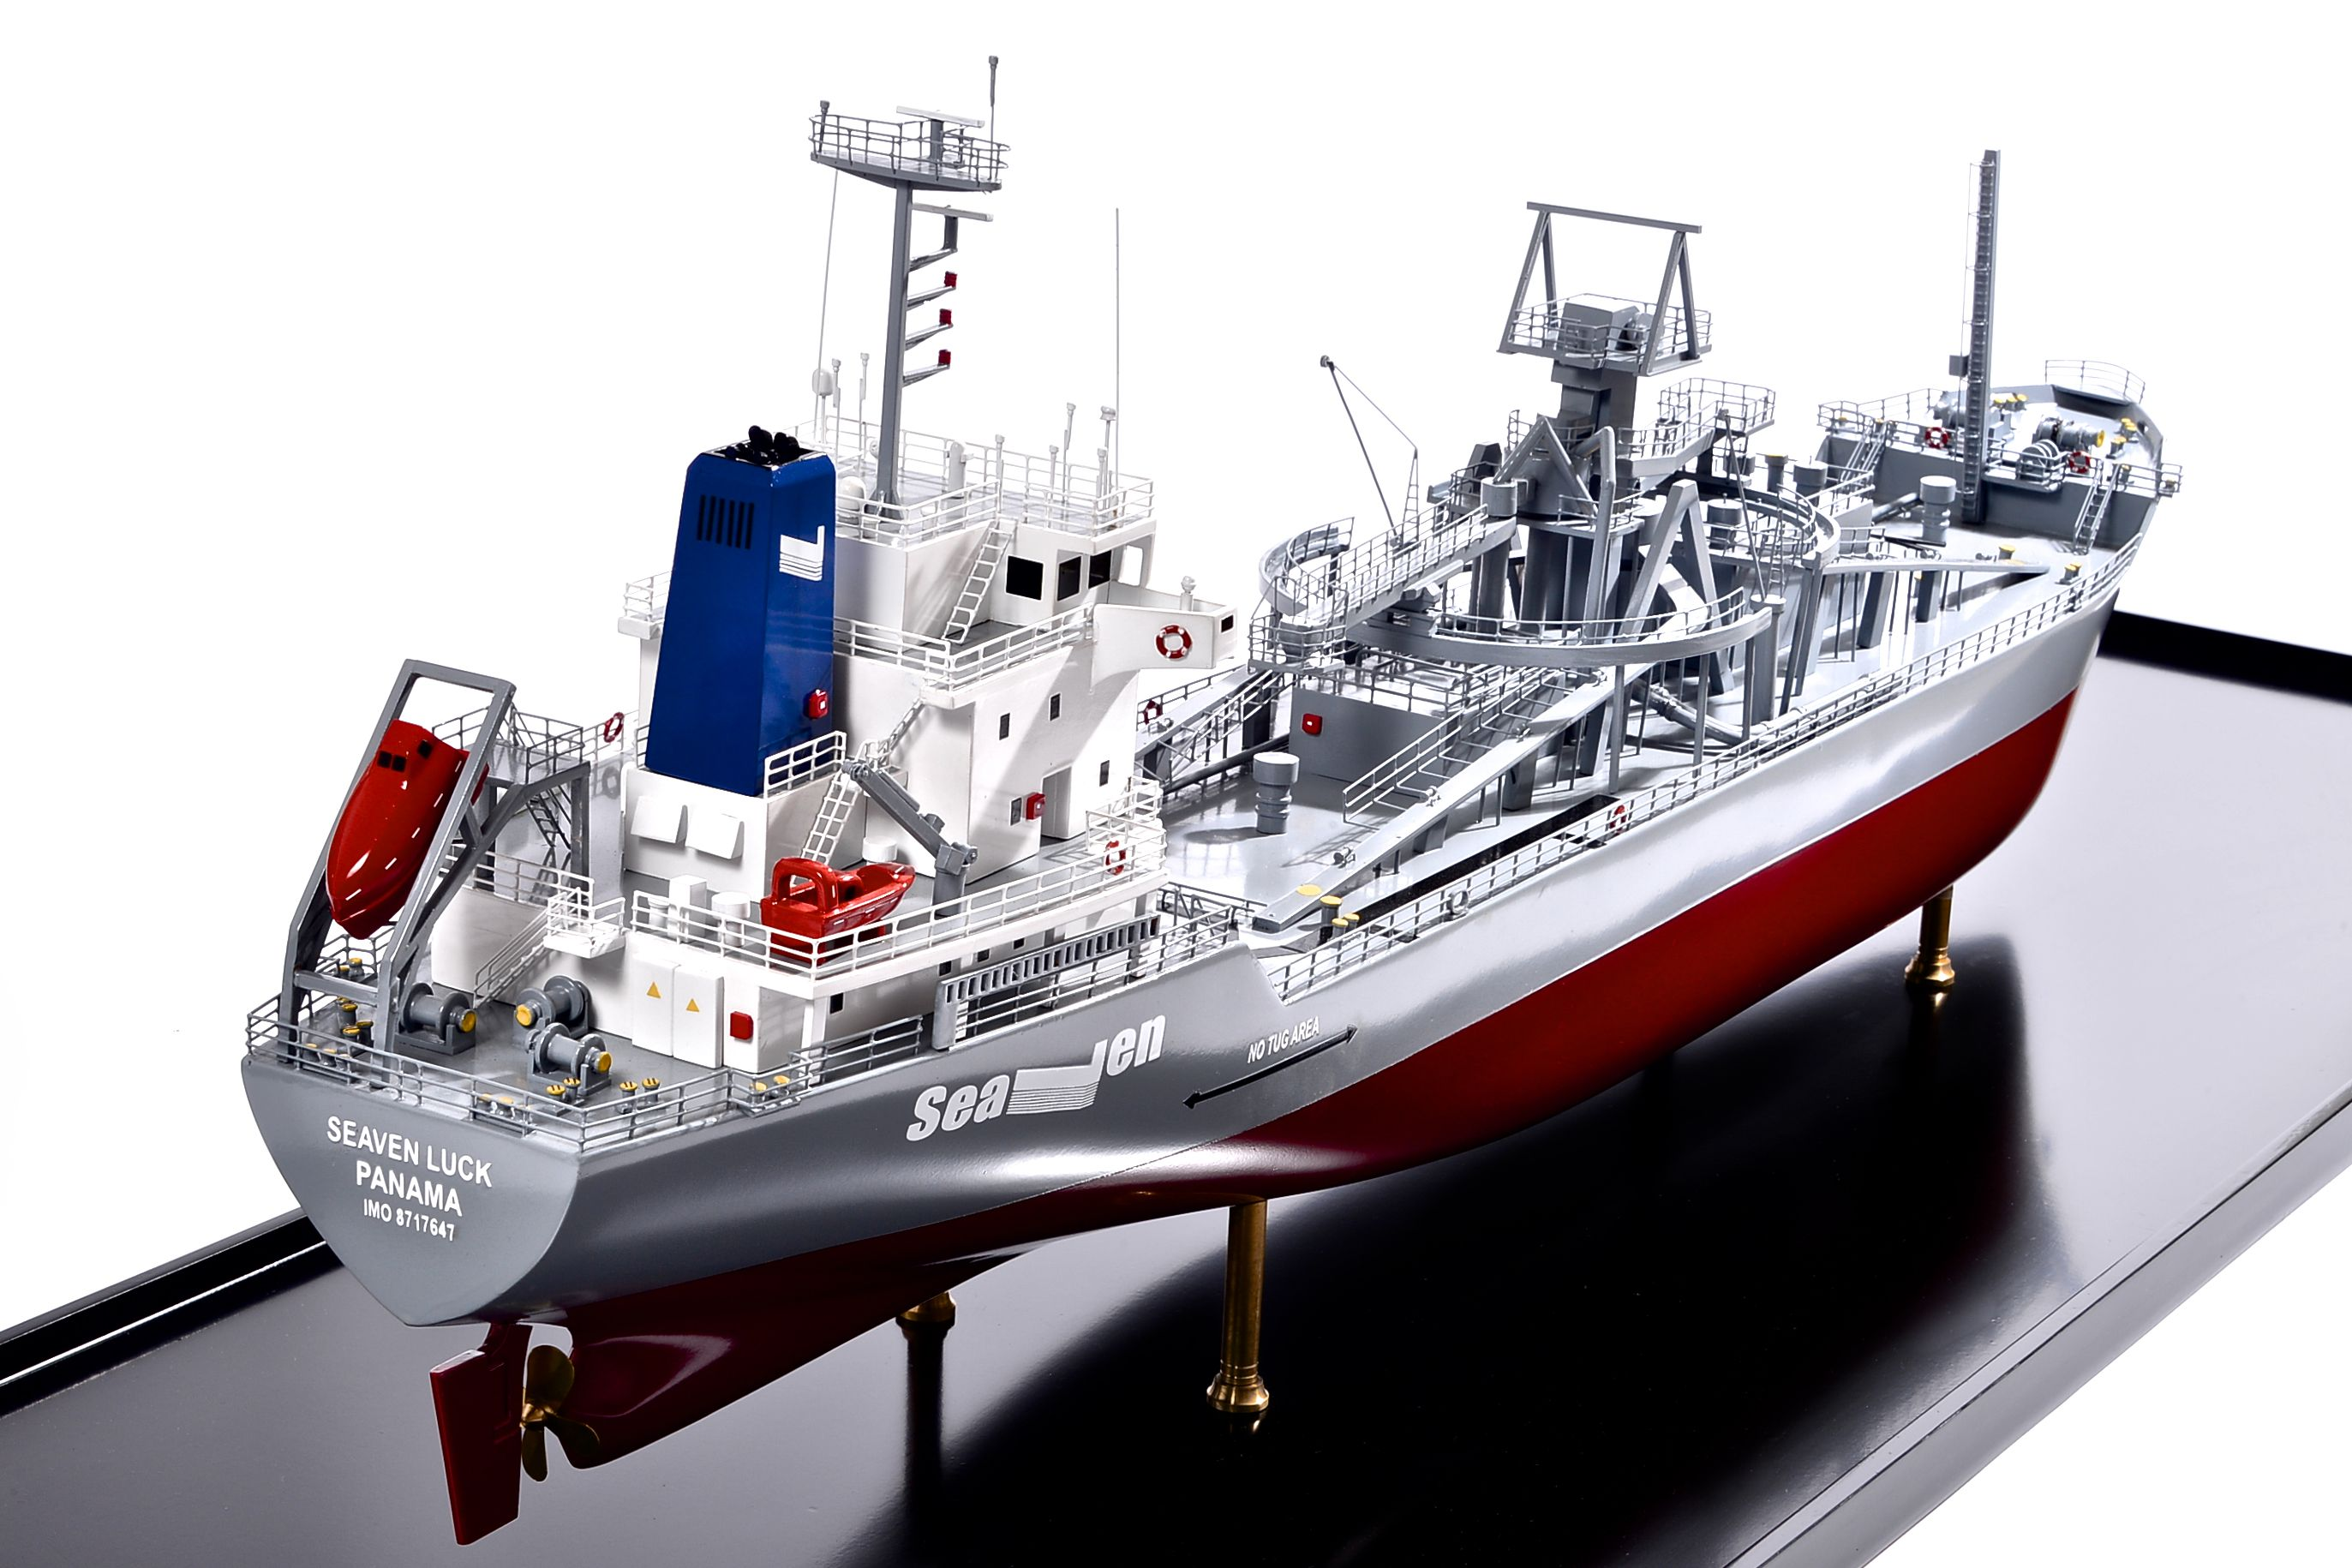 2474-14139-Seaven-Luck-Model-Ship